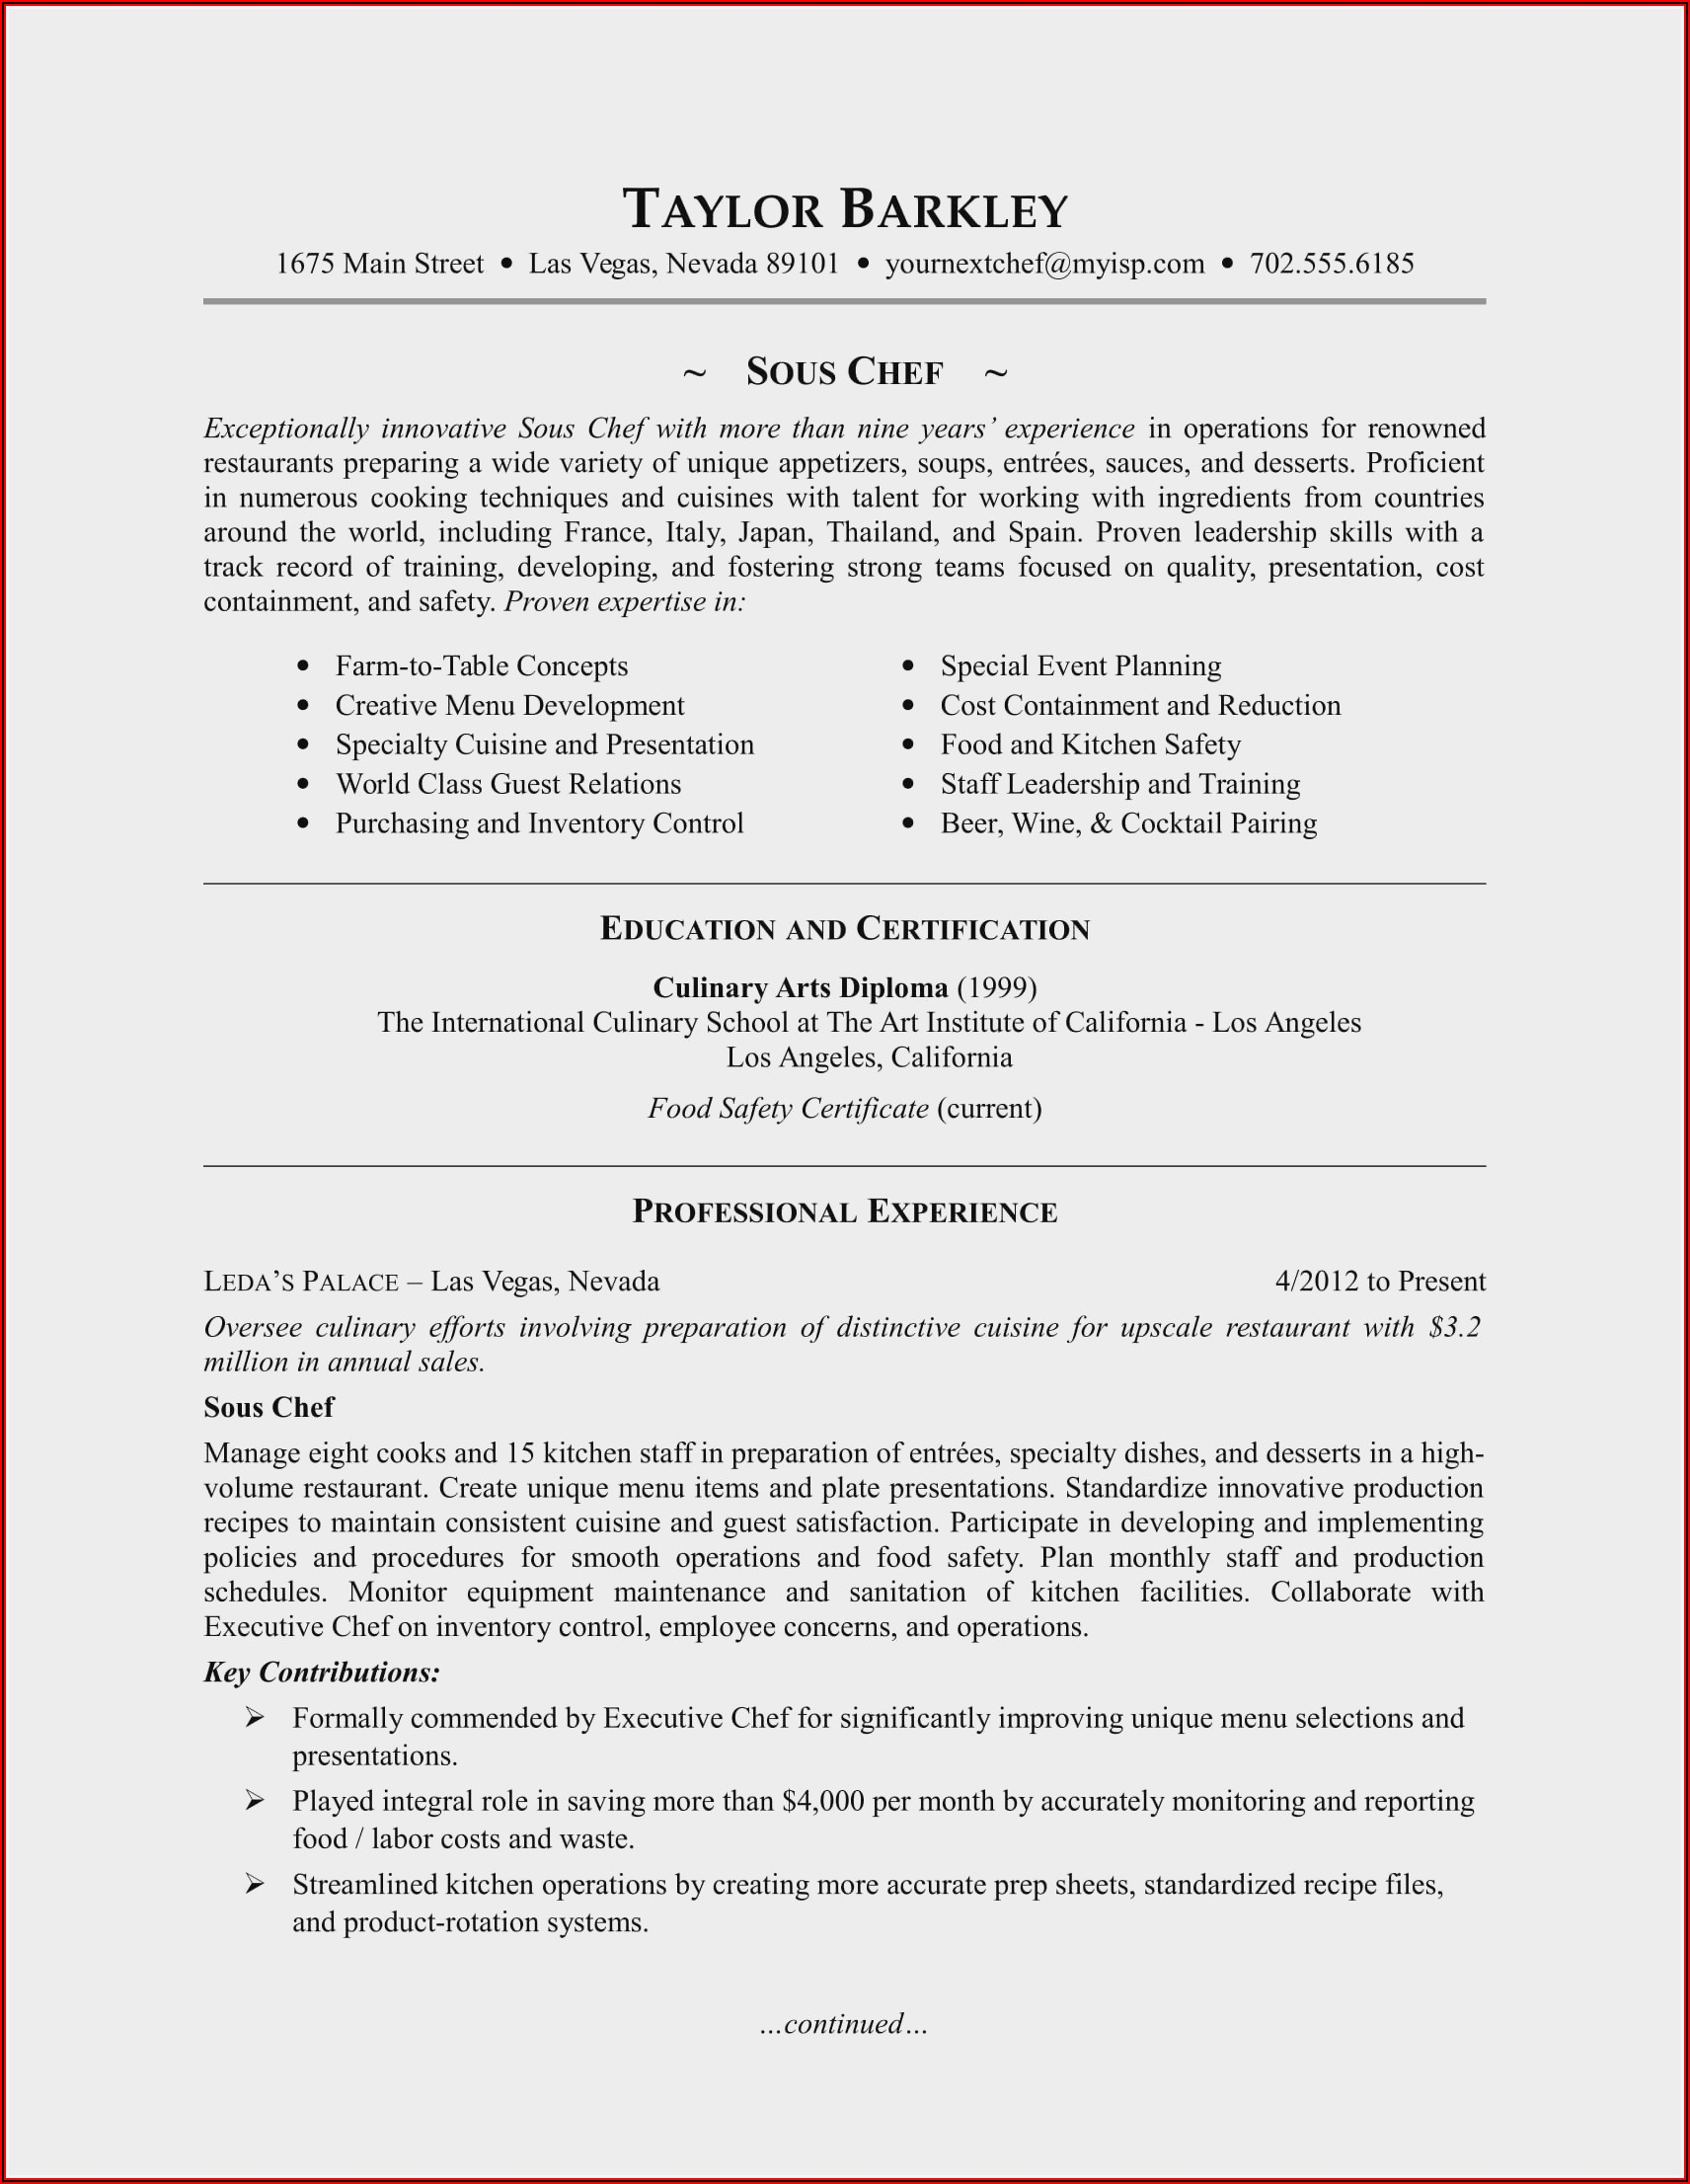 Resume Template For Sous Chef